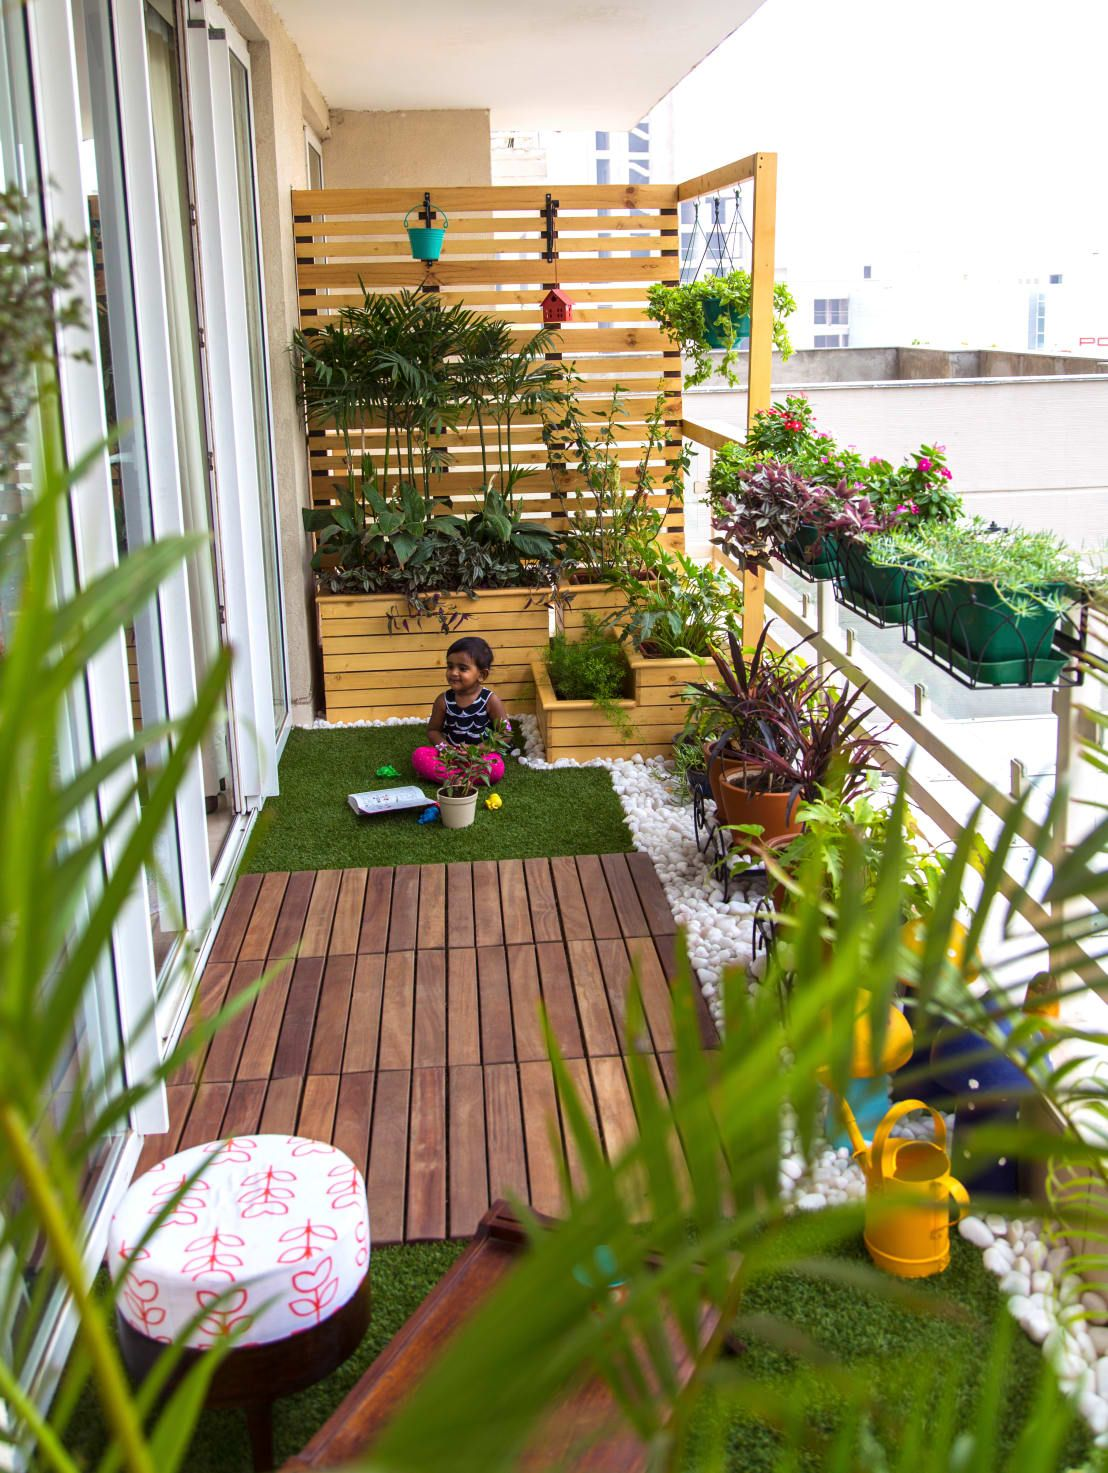 15 Smart Balcony Garden Ideas That are Awesome | Interior I Love in ...